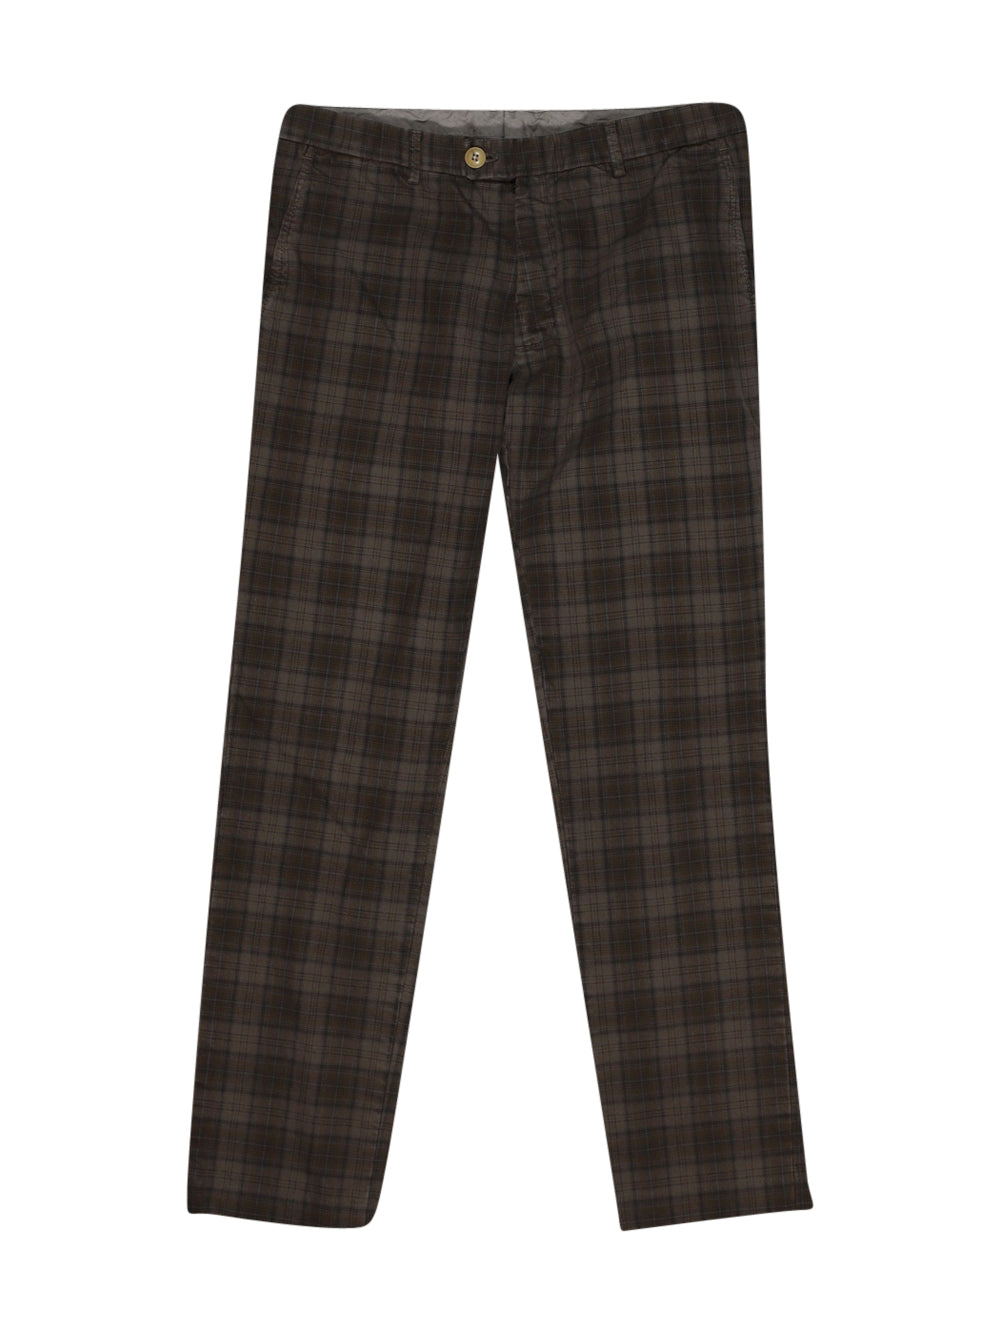 Front photo of Preloved IL Lanificio Brown Man's trousers - size 38/M